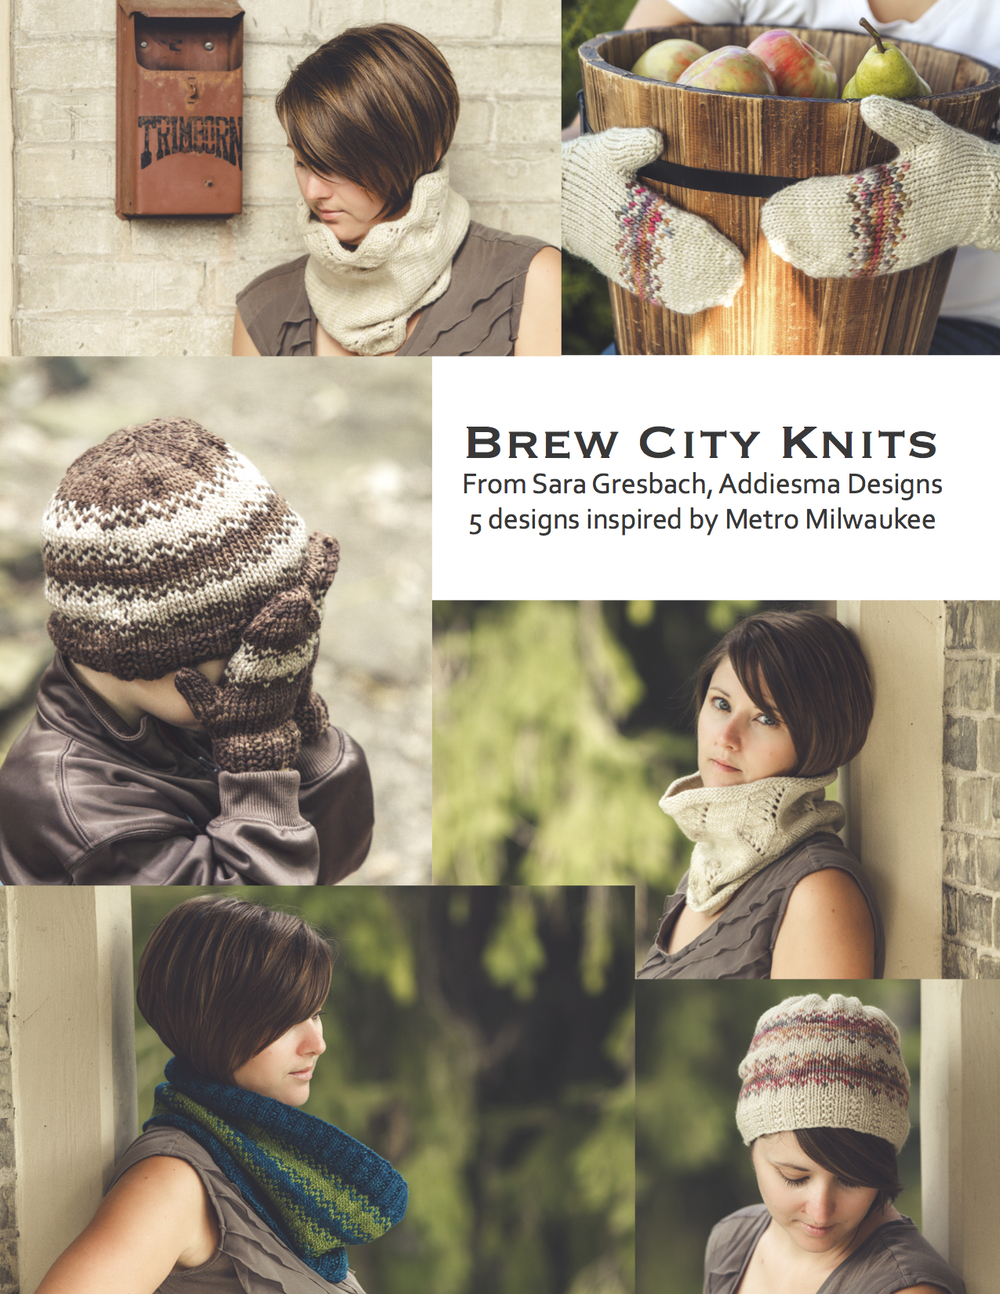 Brew City Knits Collage_HQ_JPEG.jpg